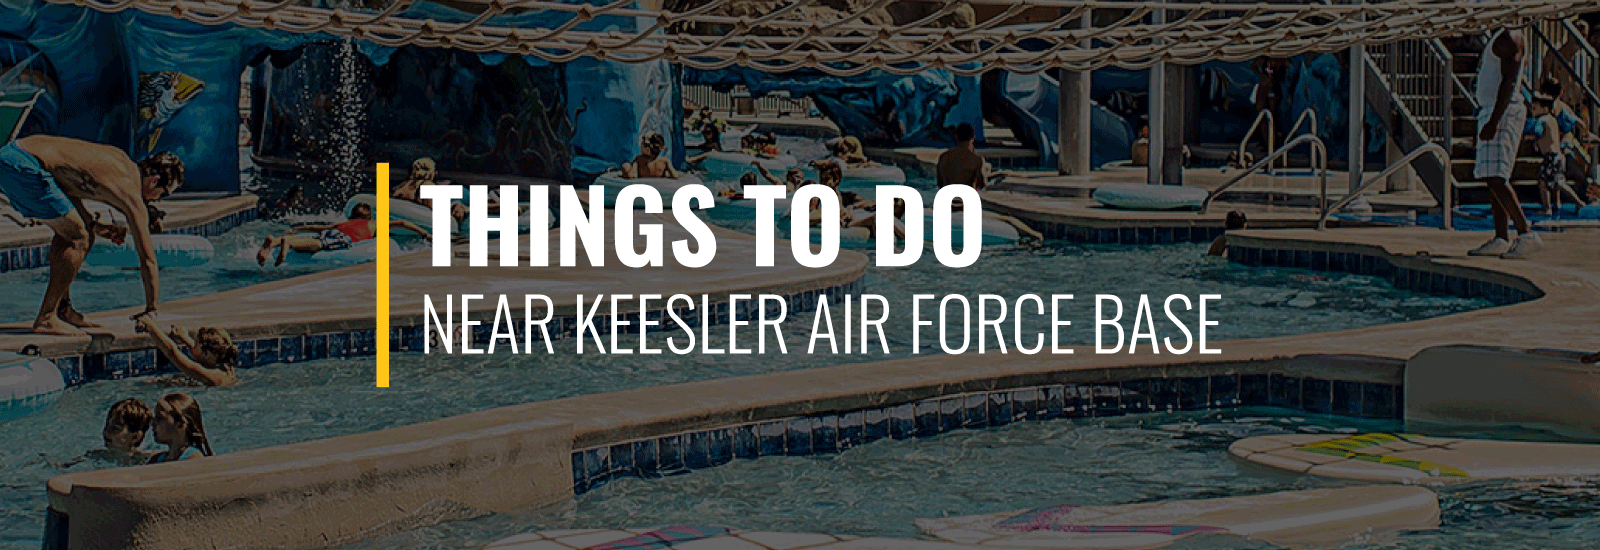 Things to Do Near Keesler AFB